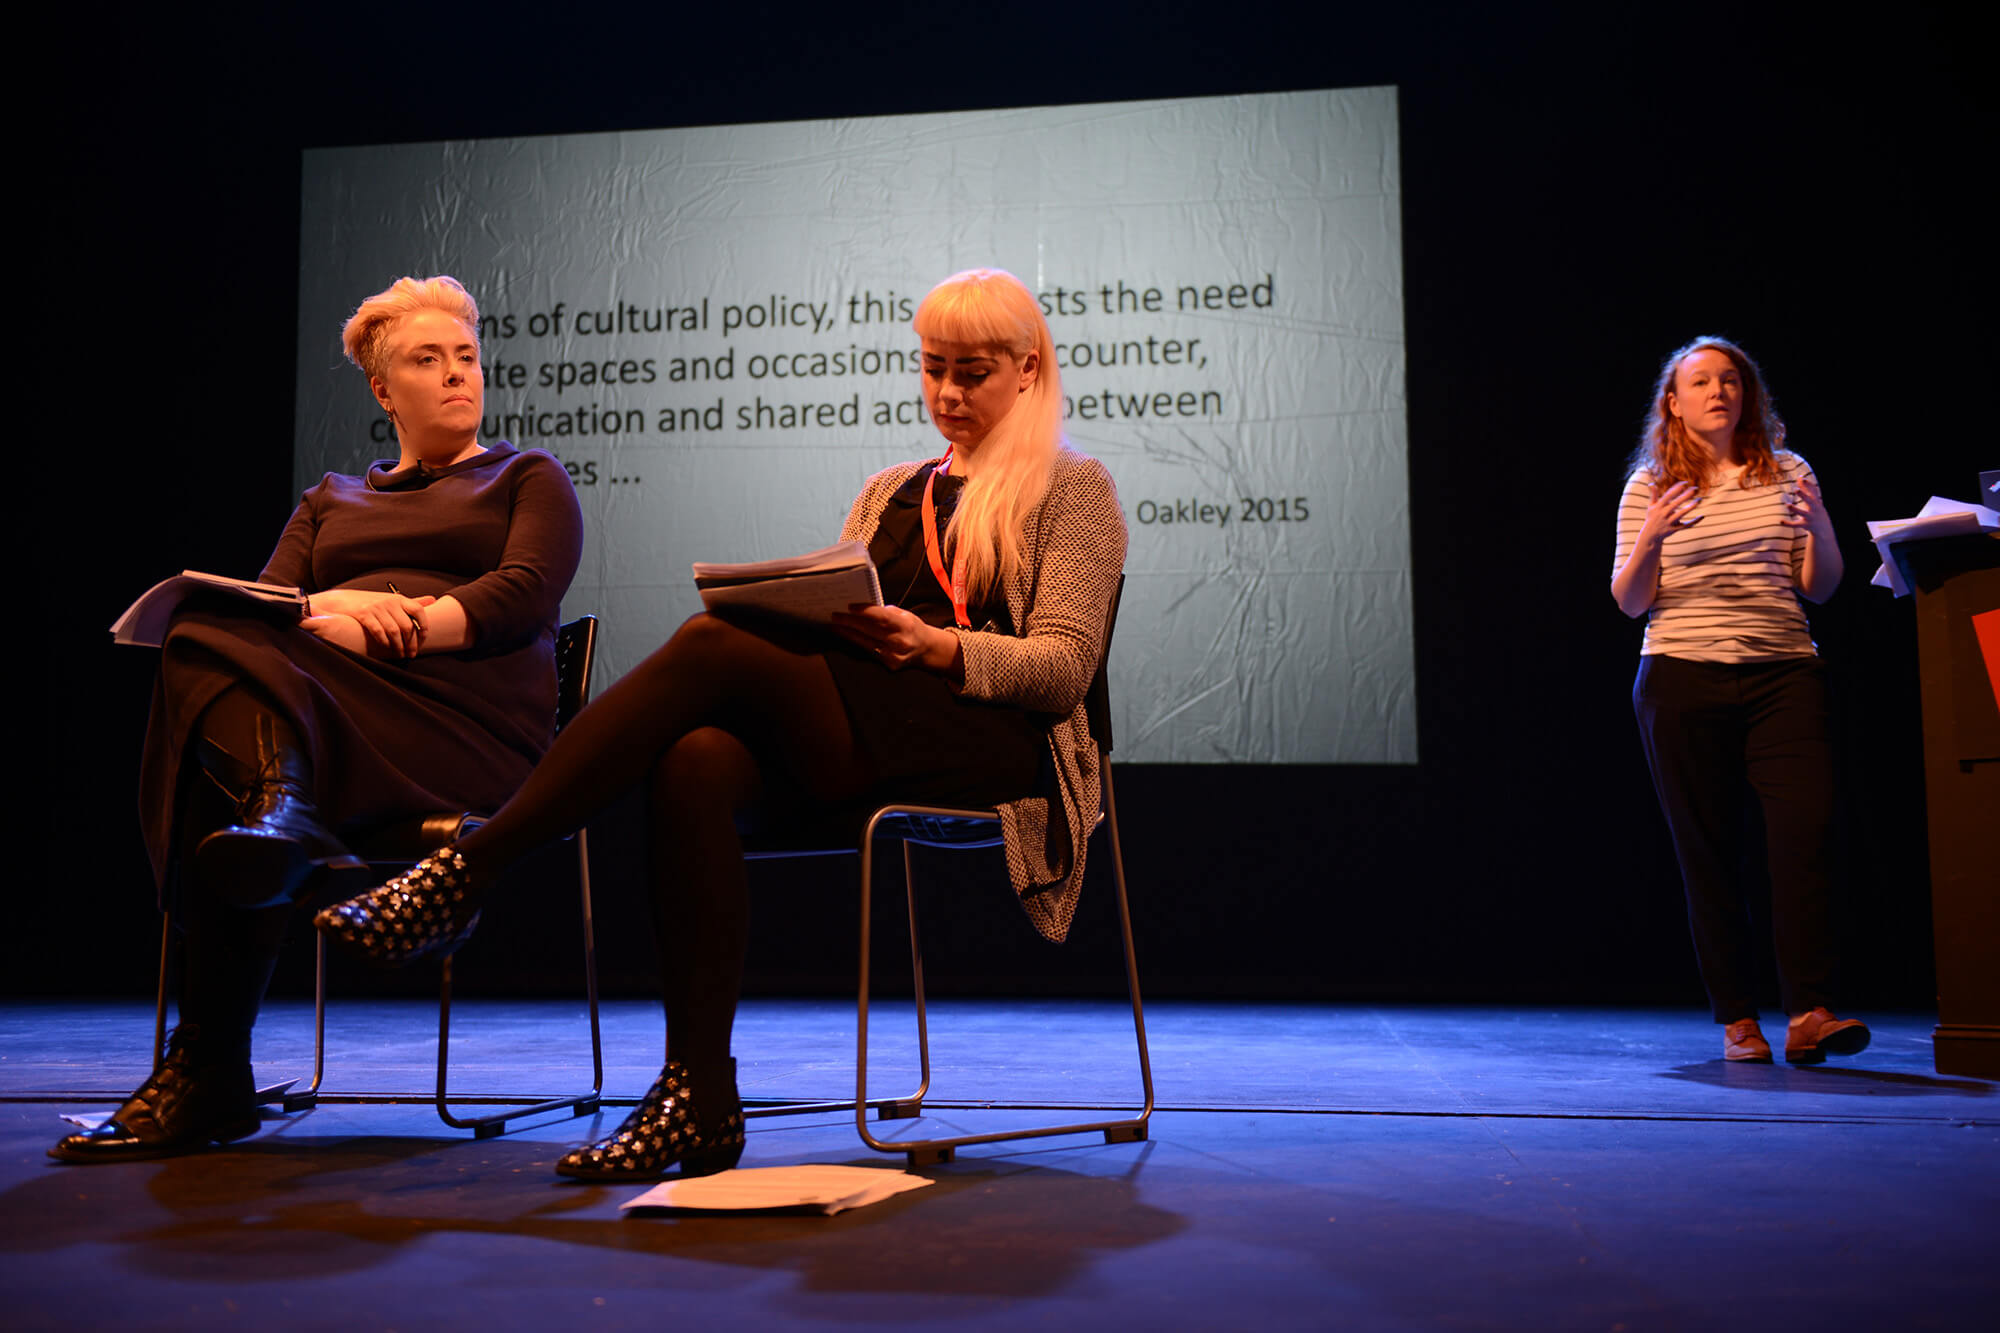 Dr Cara Courage, Dr Rhiannon Jones and Dr Victoria Barker on stage at Derby Theatre